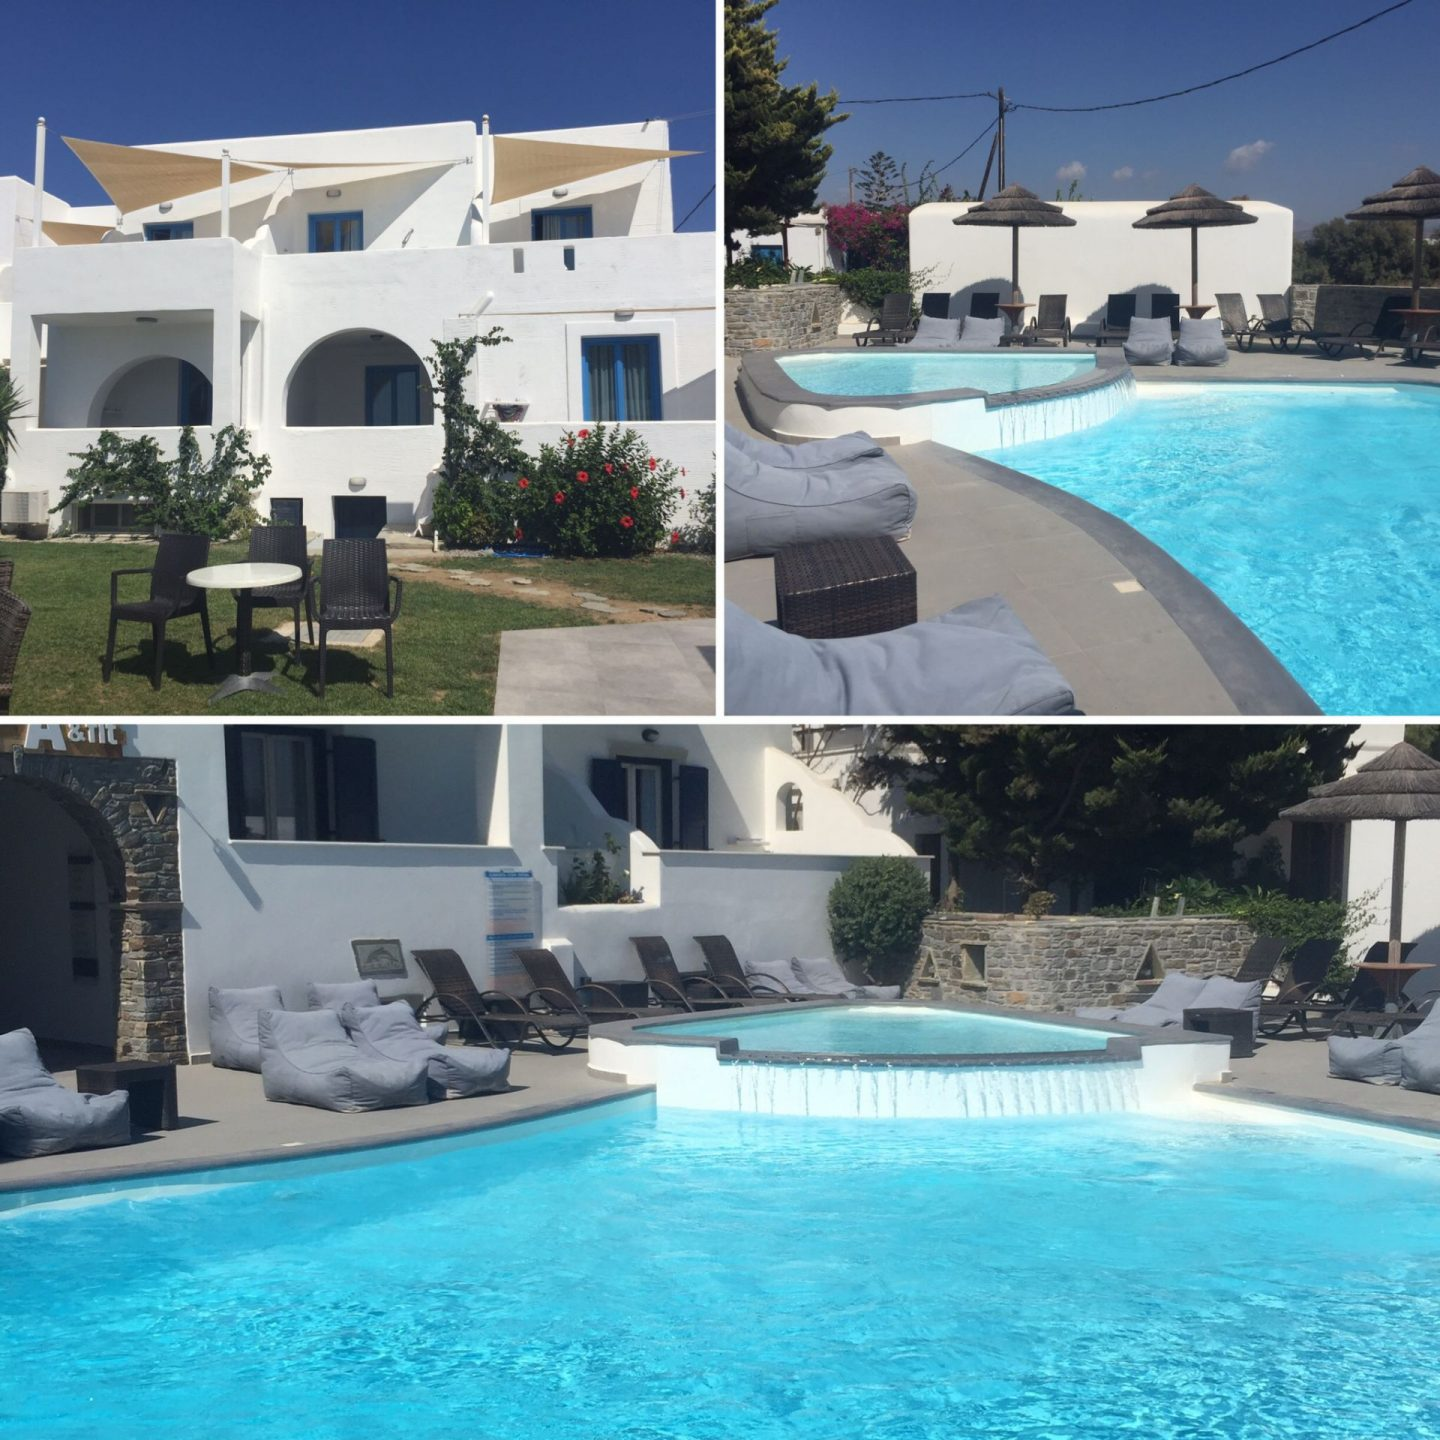 Liana Hotel in Naxos, swimming pool and lawn